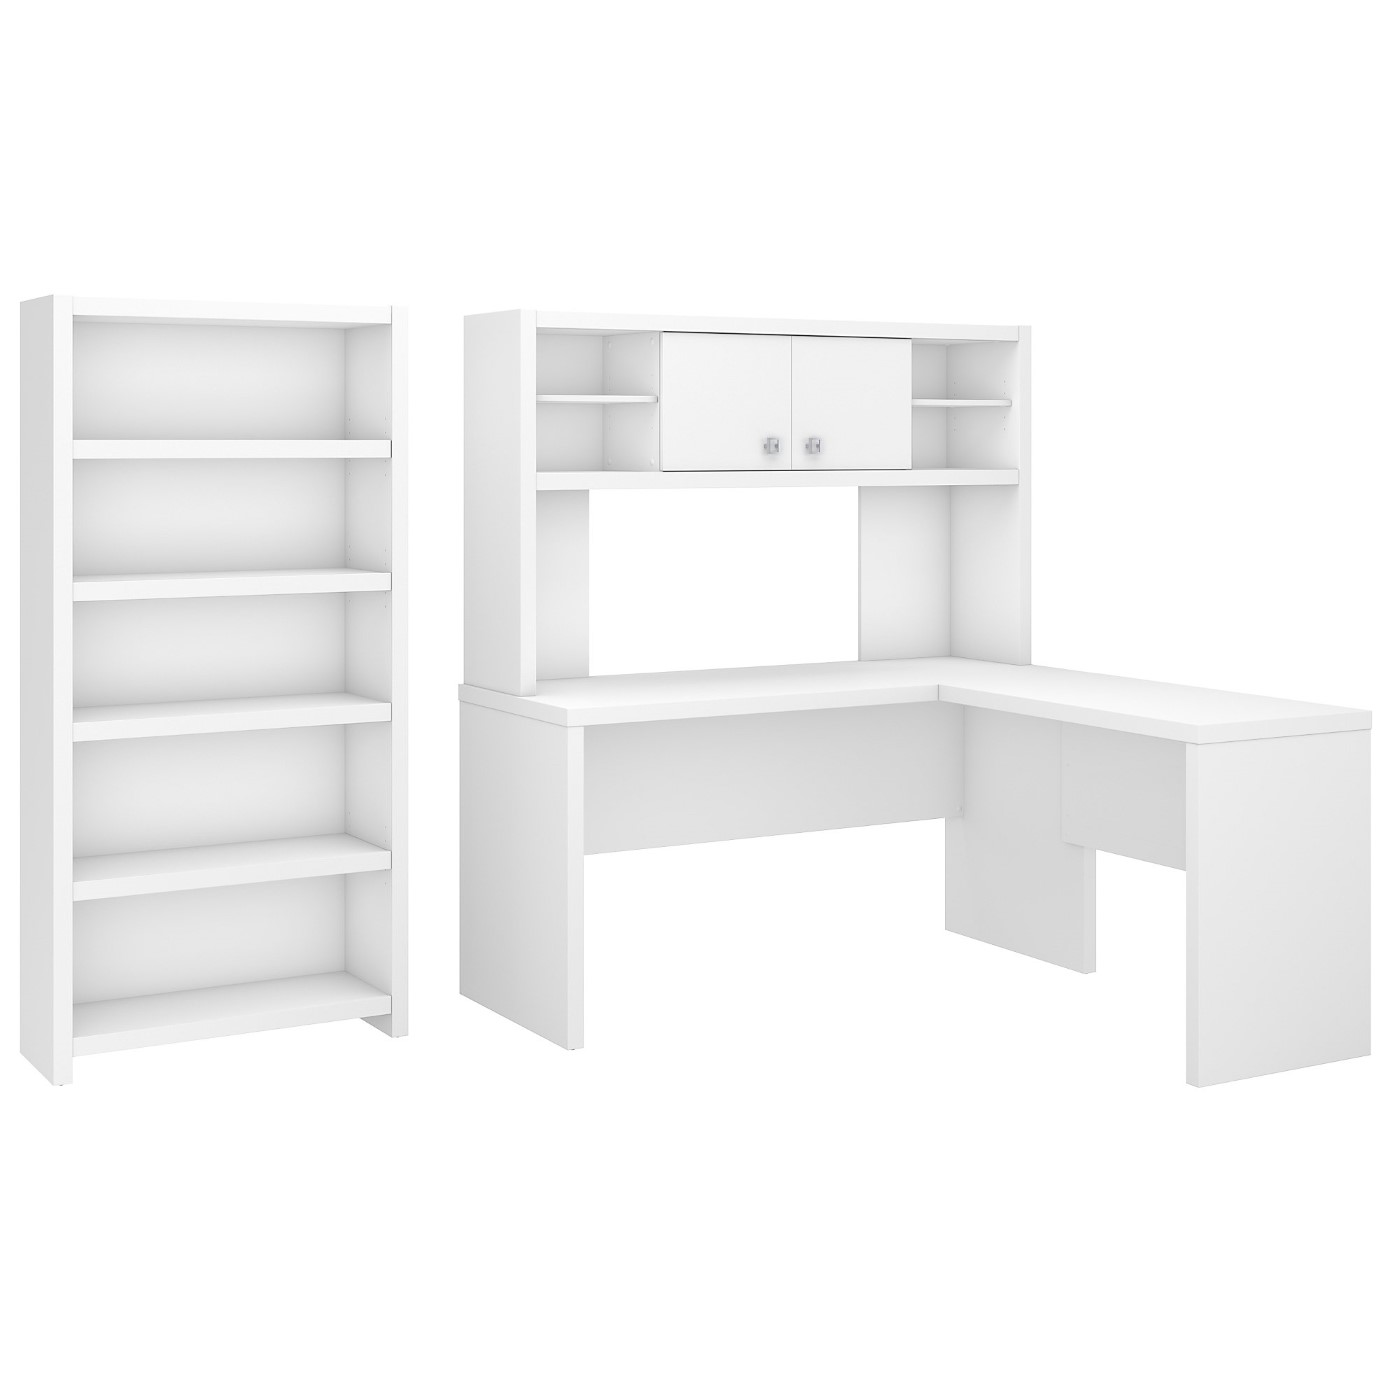 OFFICE BY KATHY IRELAND� ECHO L SHAPED DESK WITH HUTCH AND 5 SHELF BOOKCASE. FREE SHIPPING